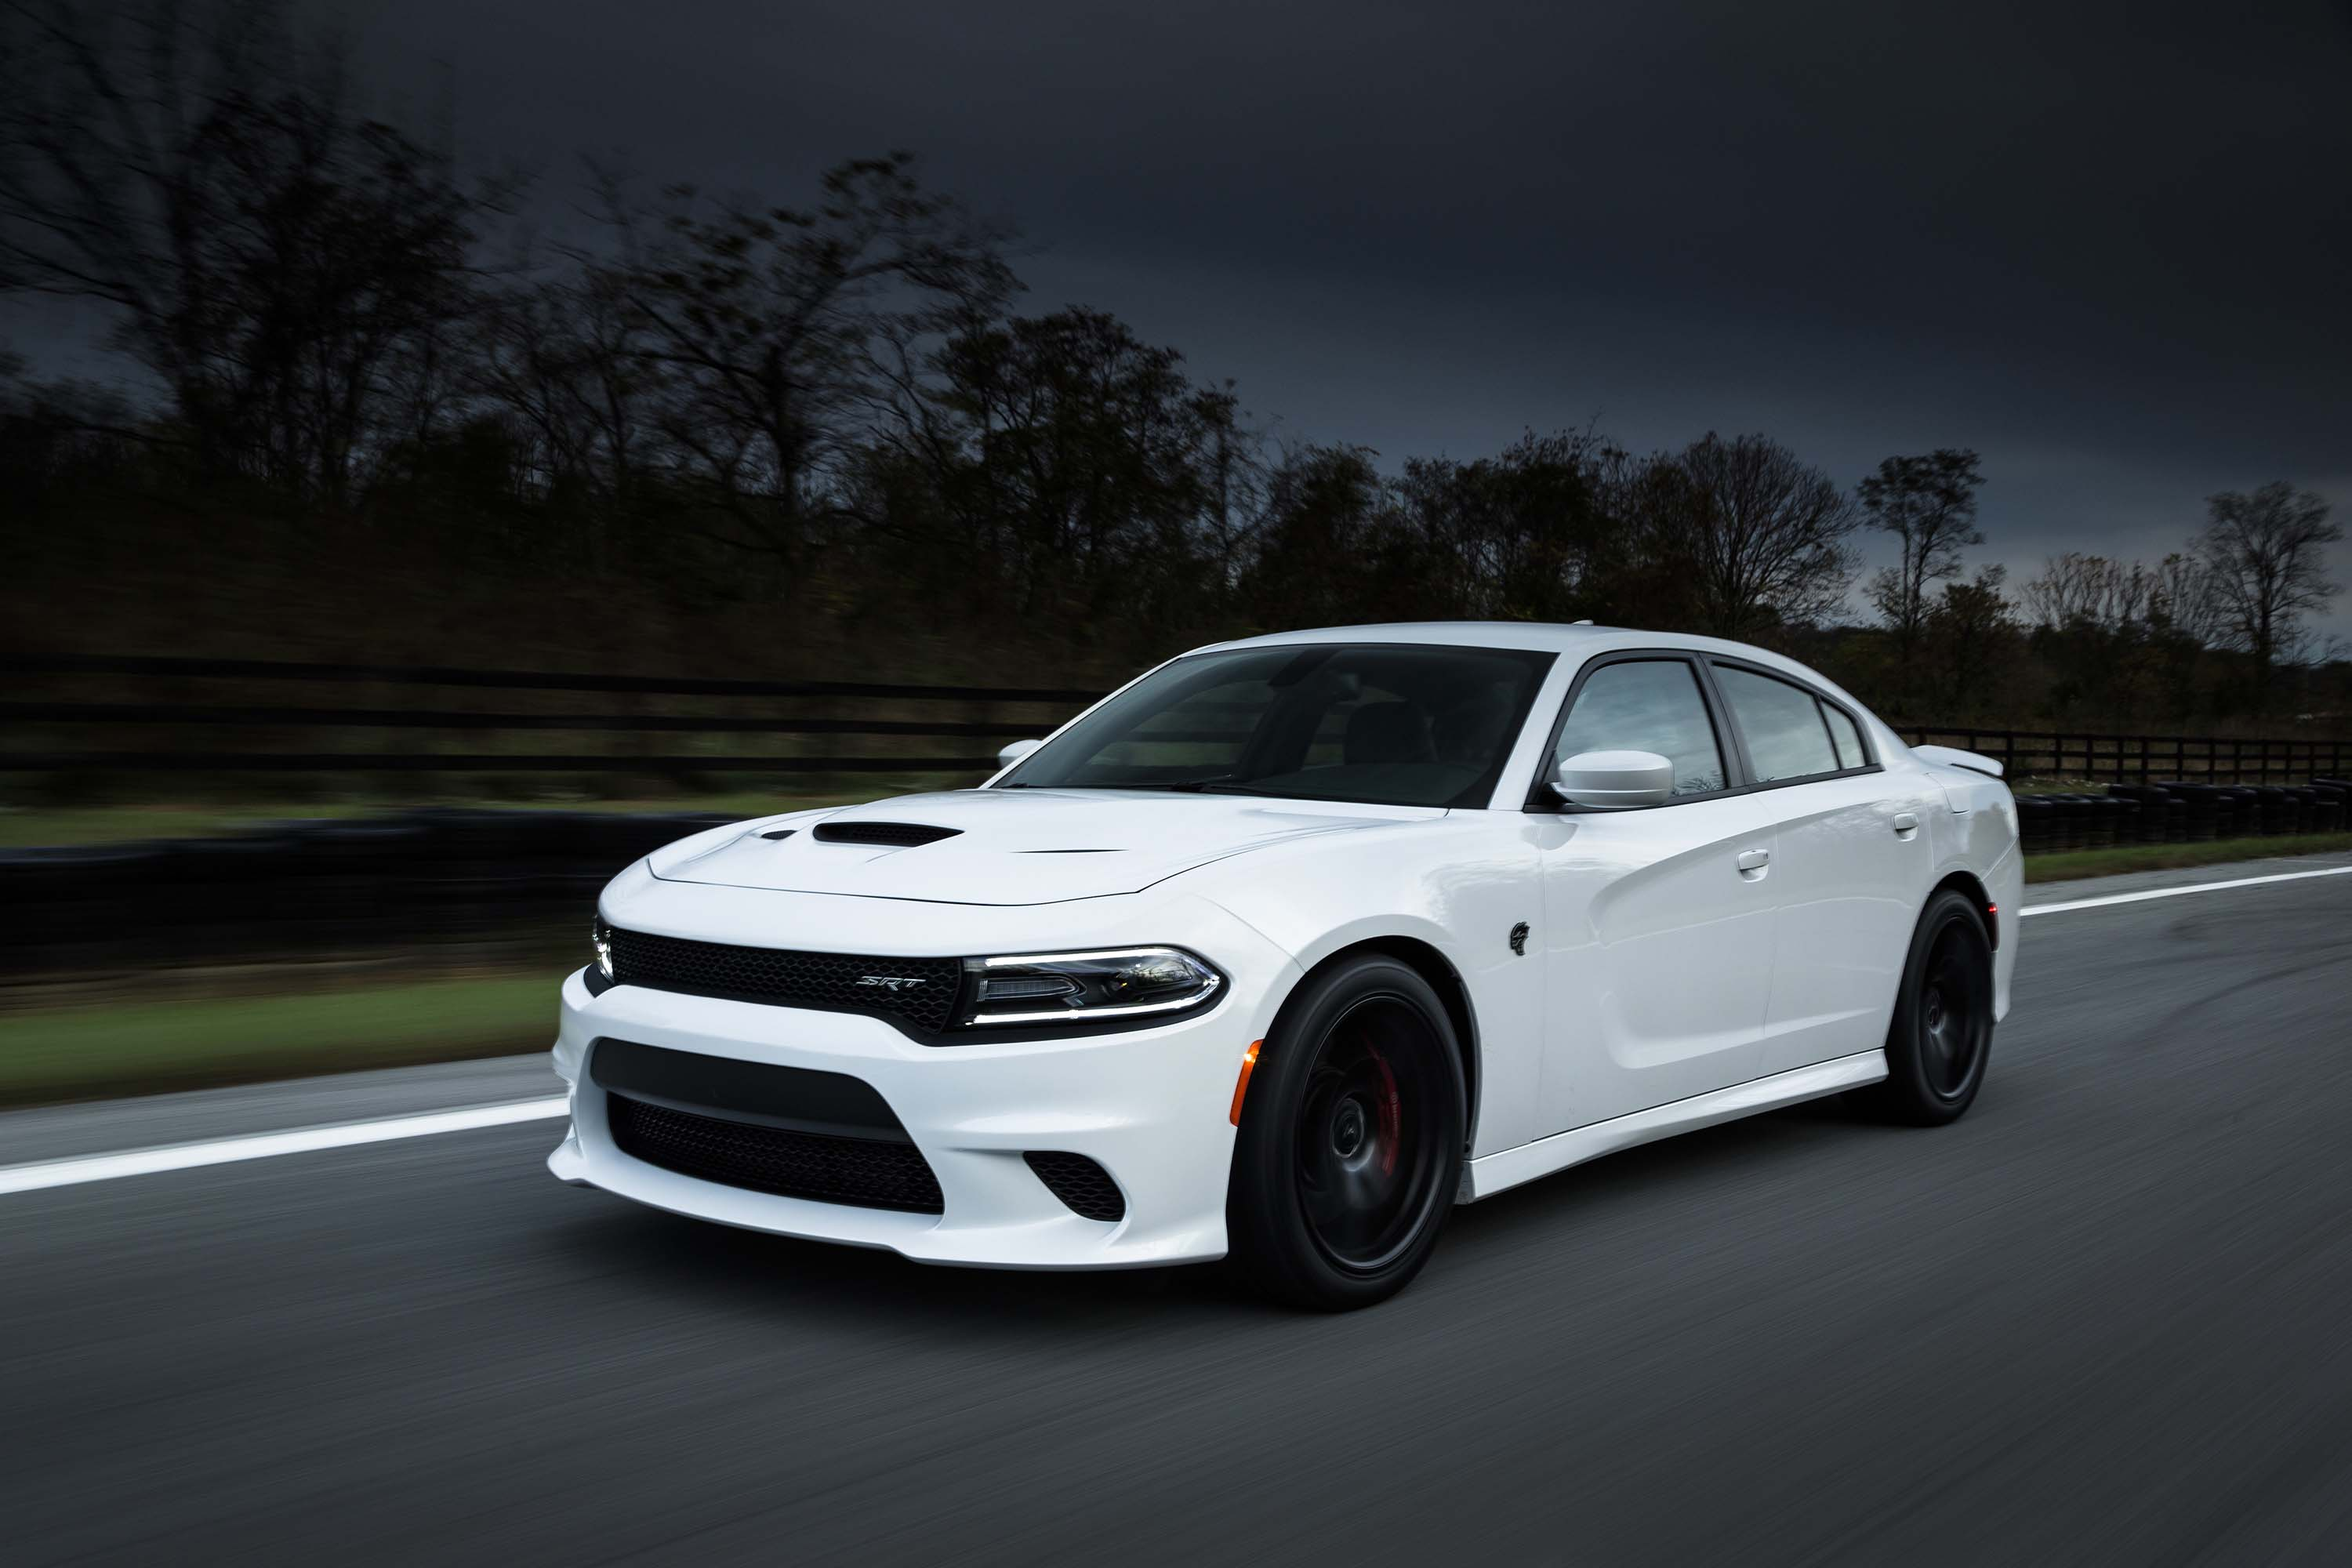 2015 dodge charger srt hellcat iron lion from zion automotive rhythms. Black Bedroom Furniture Sets. Home Design Ideas